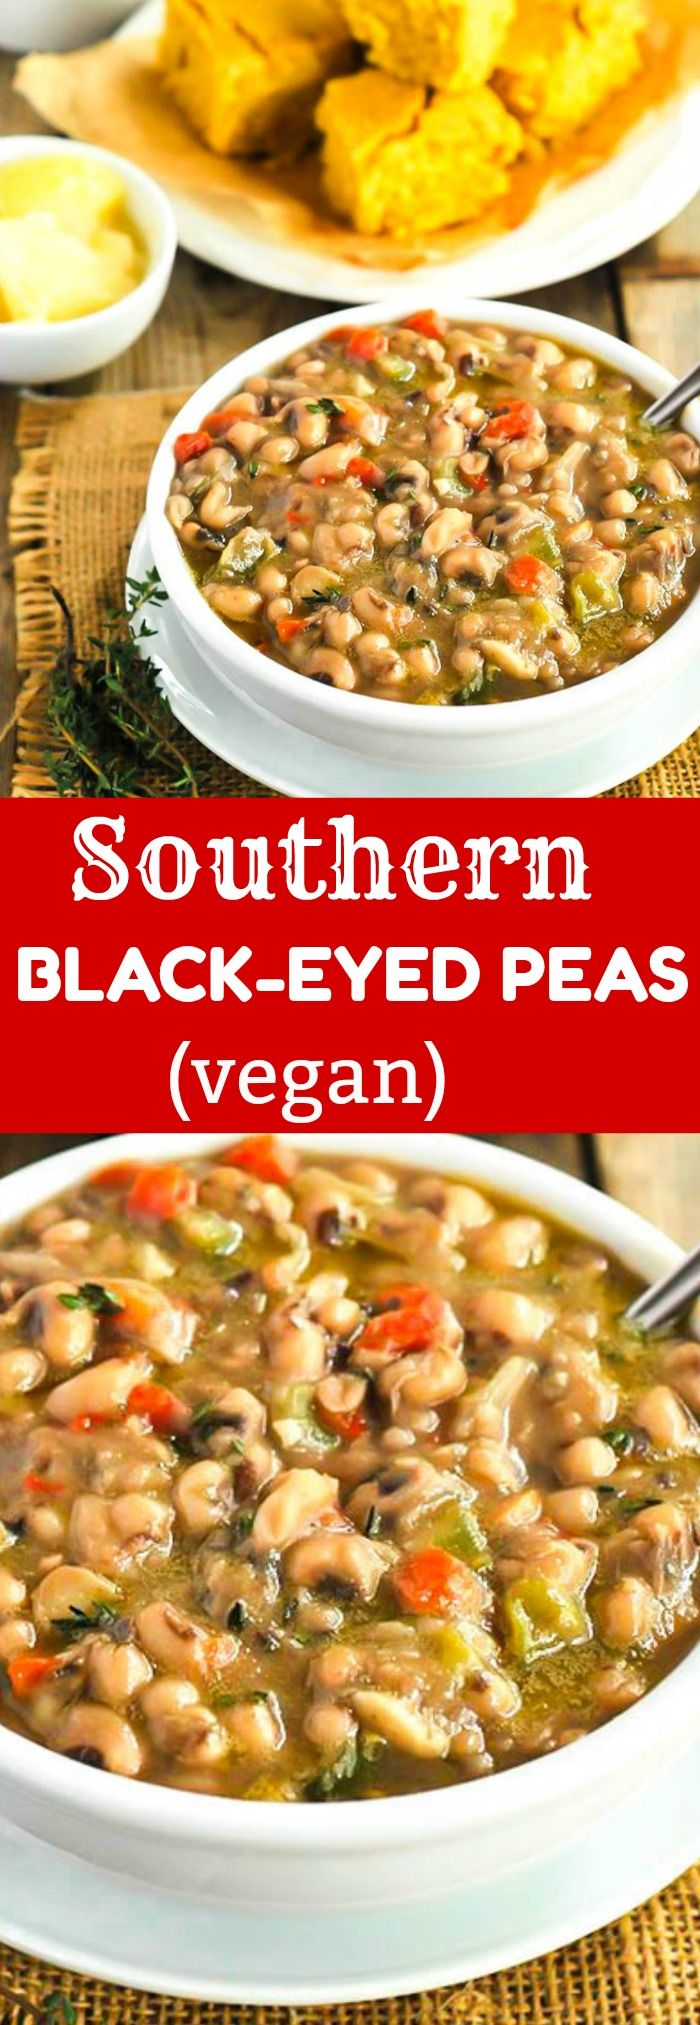 Southern Black eyed peas and use chicken sausage not tofu